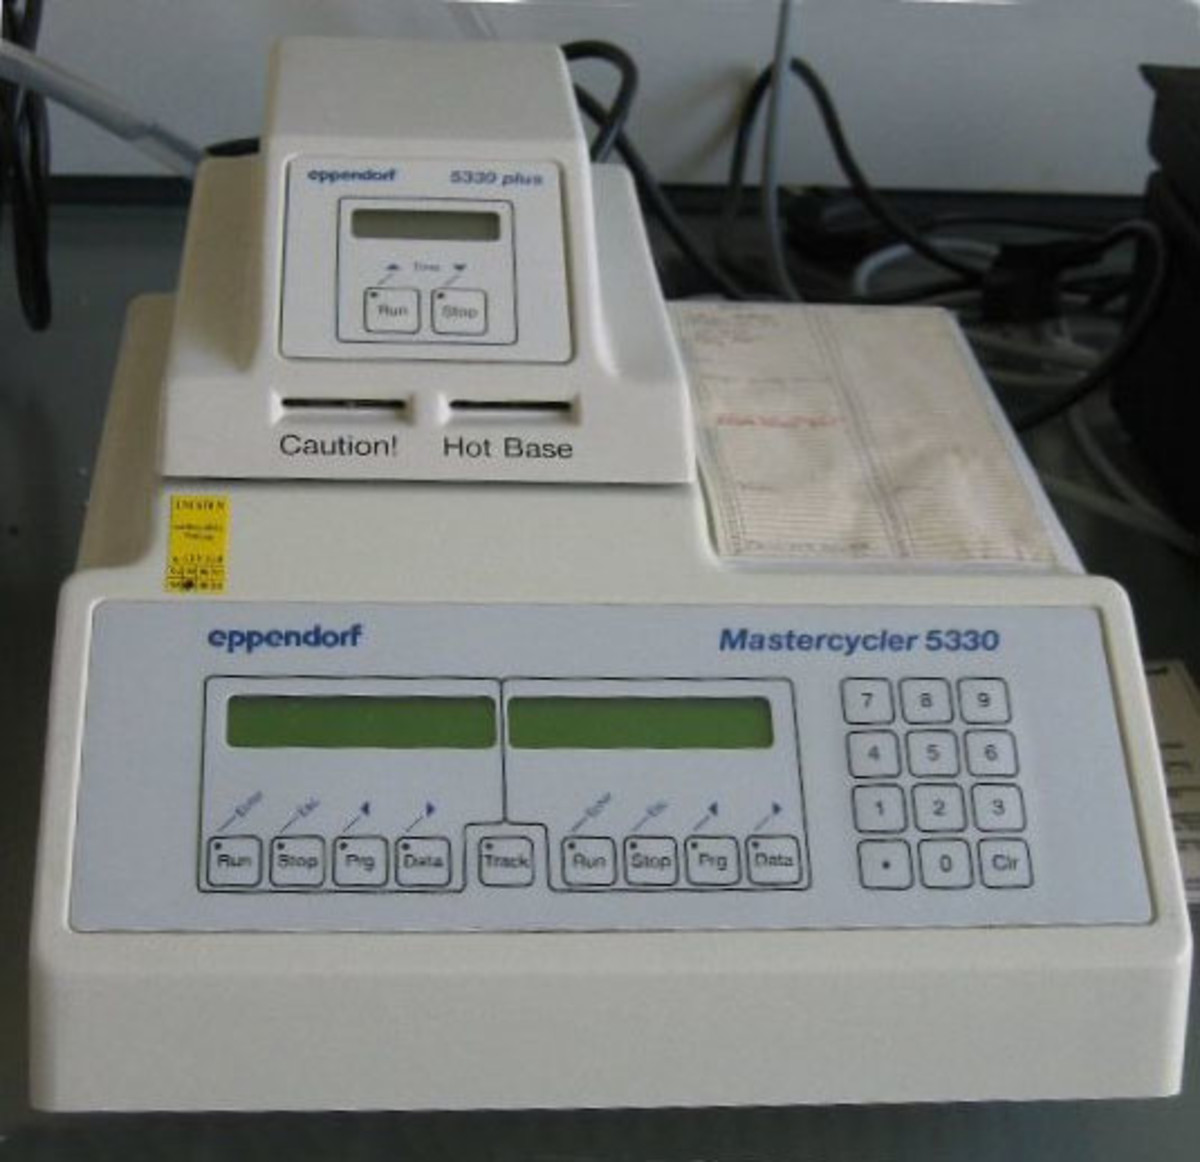 A PCR thermocycler, used to control the temperature cycles for amplifying DNA sequences.